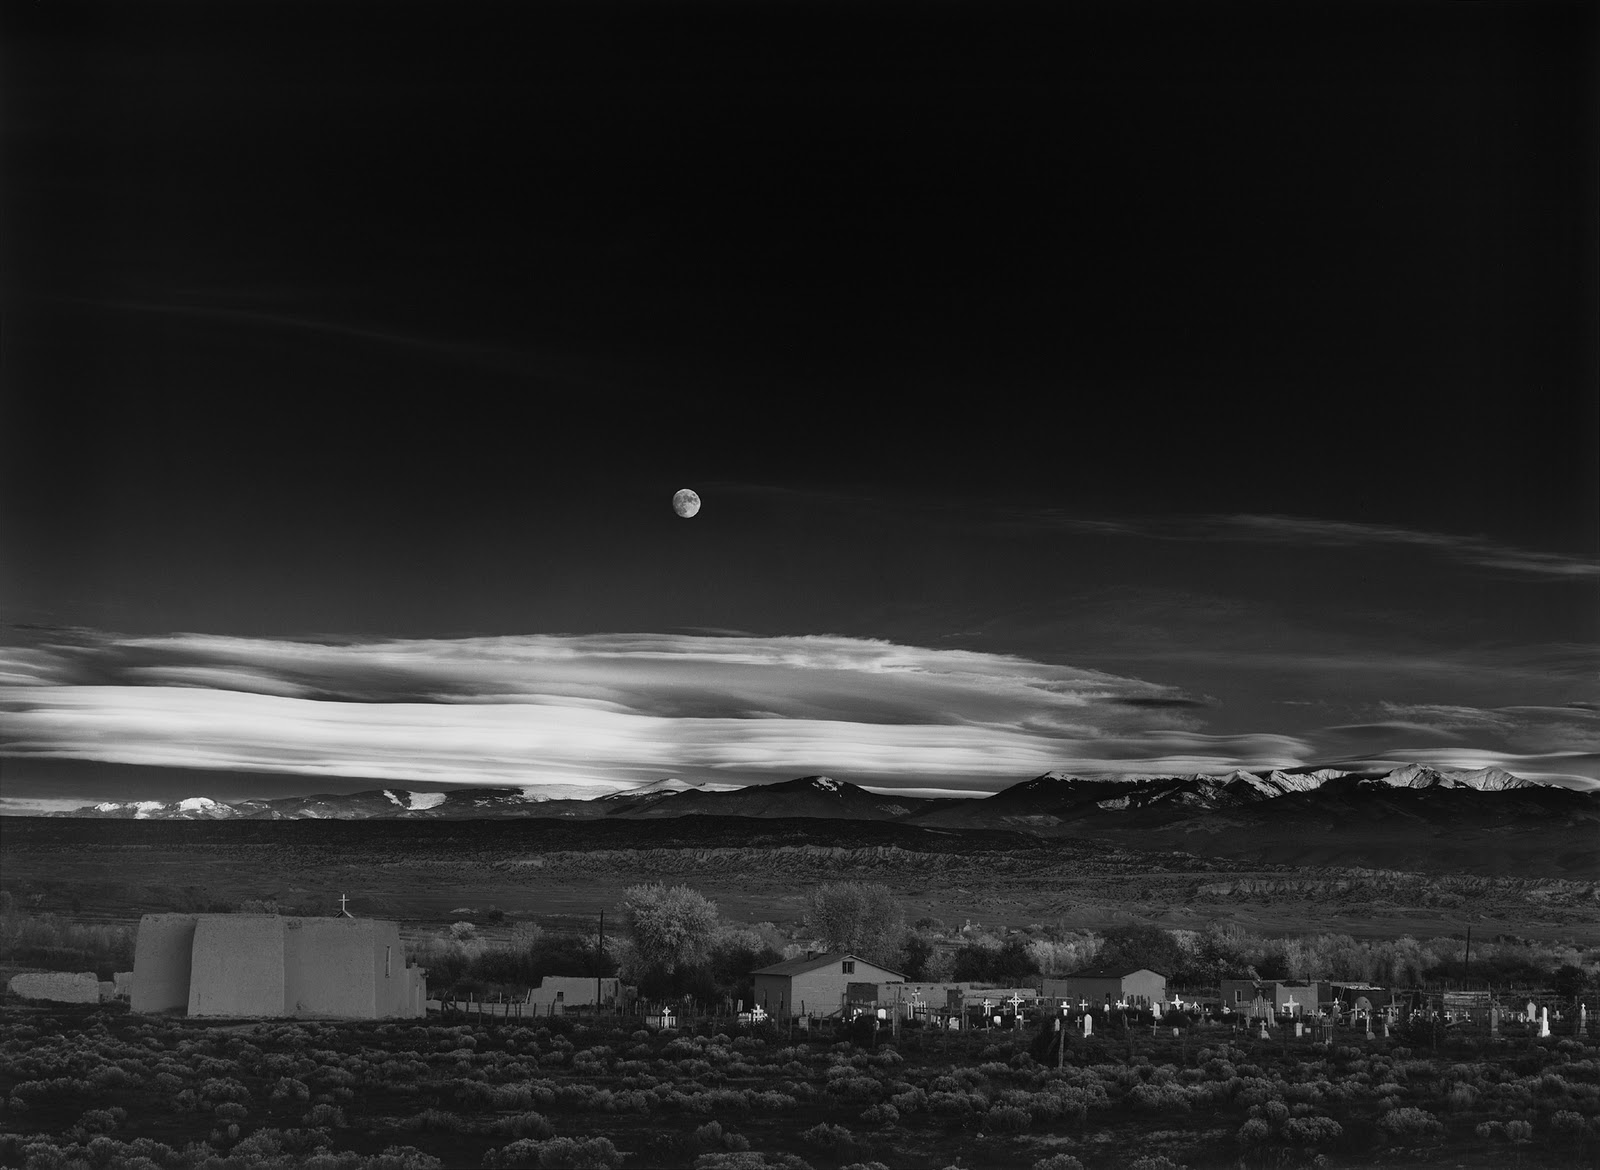 Ansel-Adams-Moonrise-Hernandez-New-Mexico-1941